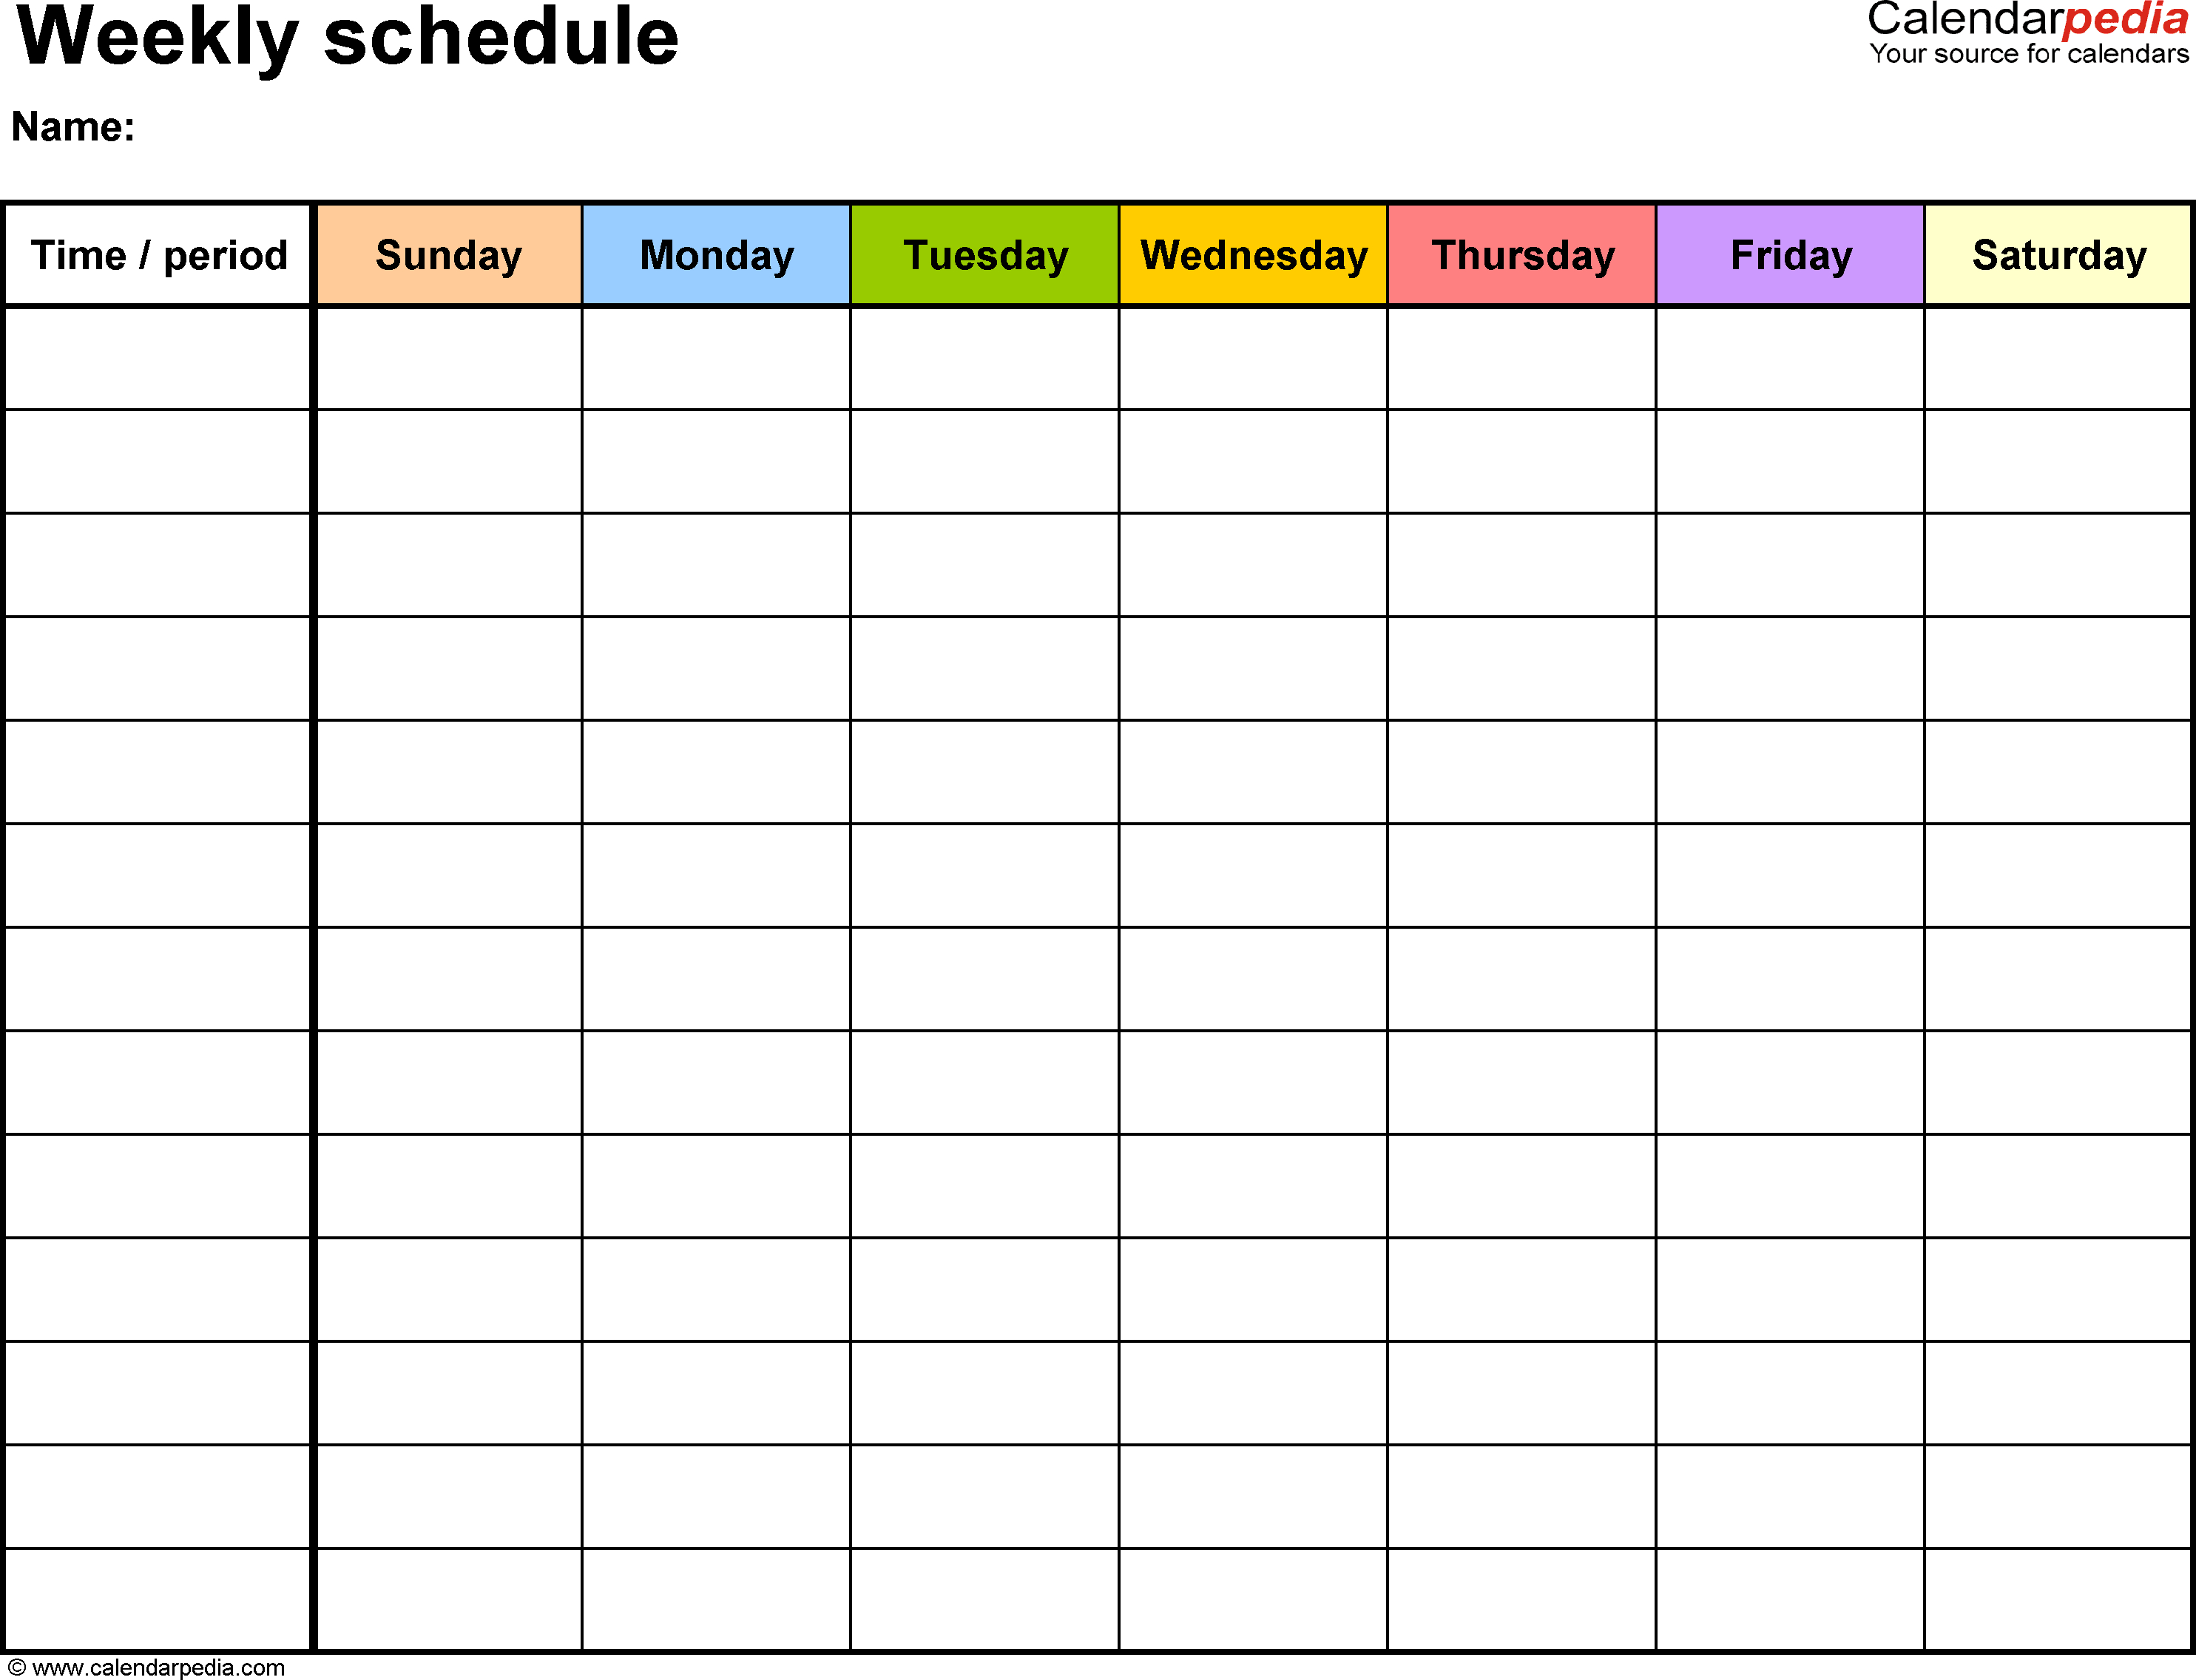 Weekly Schedule Template For Word Version 13: Landscape, 1 Page intended for 5 Day Week Blank Calendar With Time Slots Printable